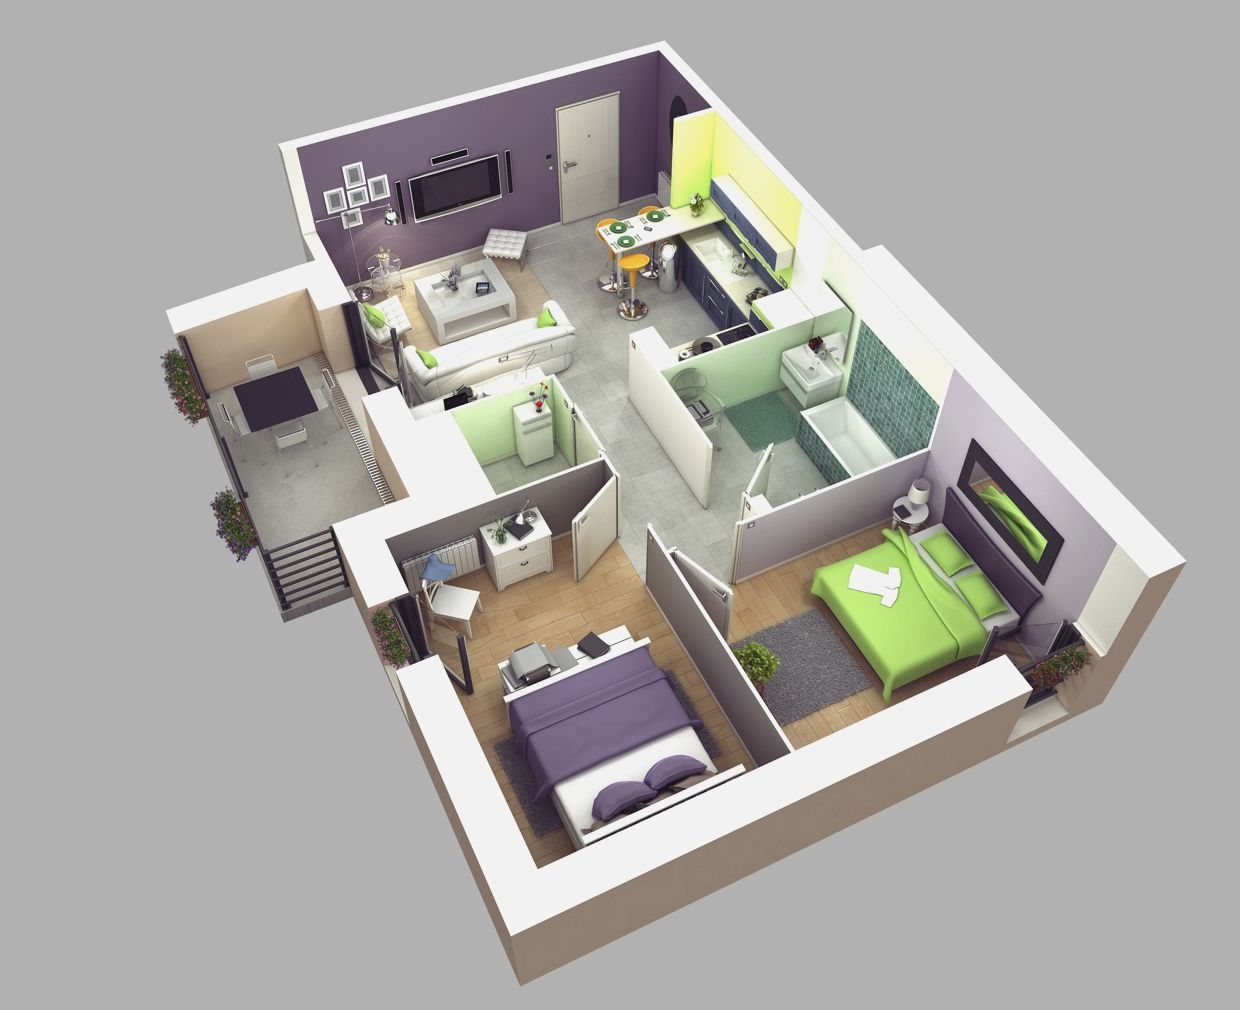 1 bedroom house plans 3d just the two of us apartment Single bedroom design ideas